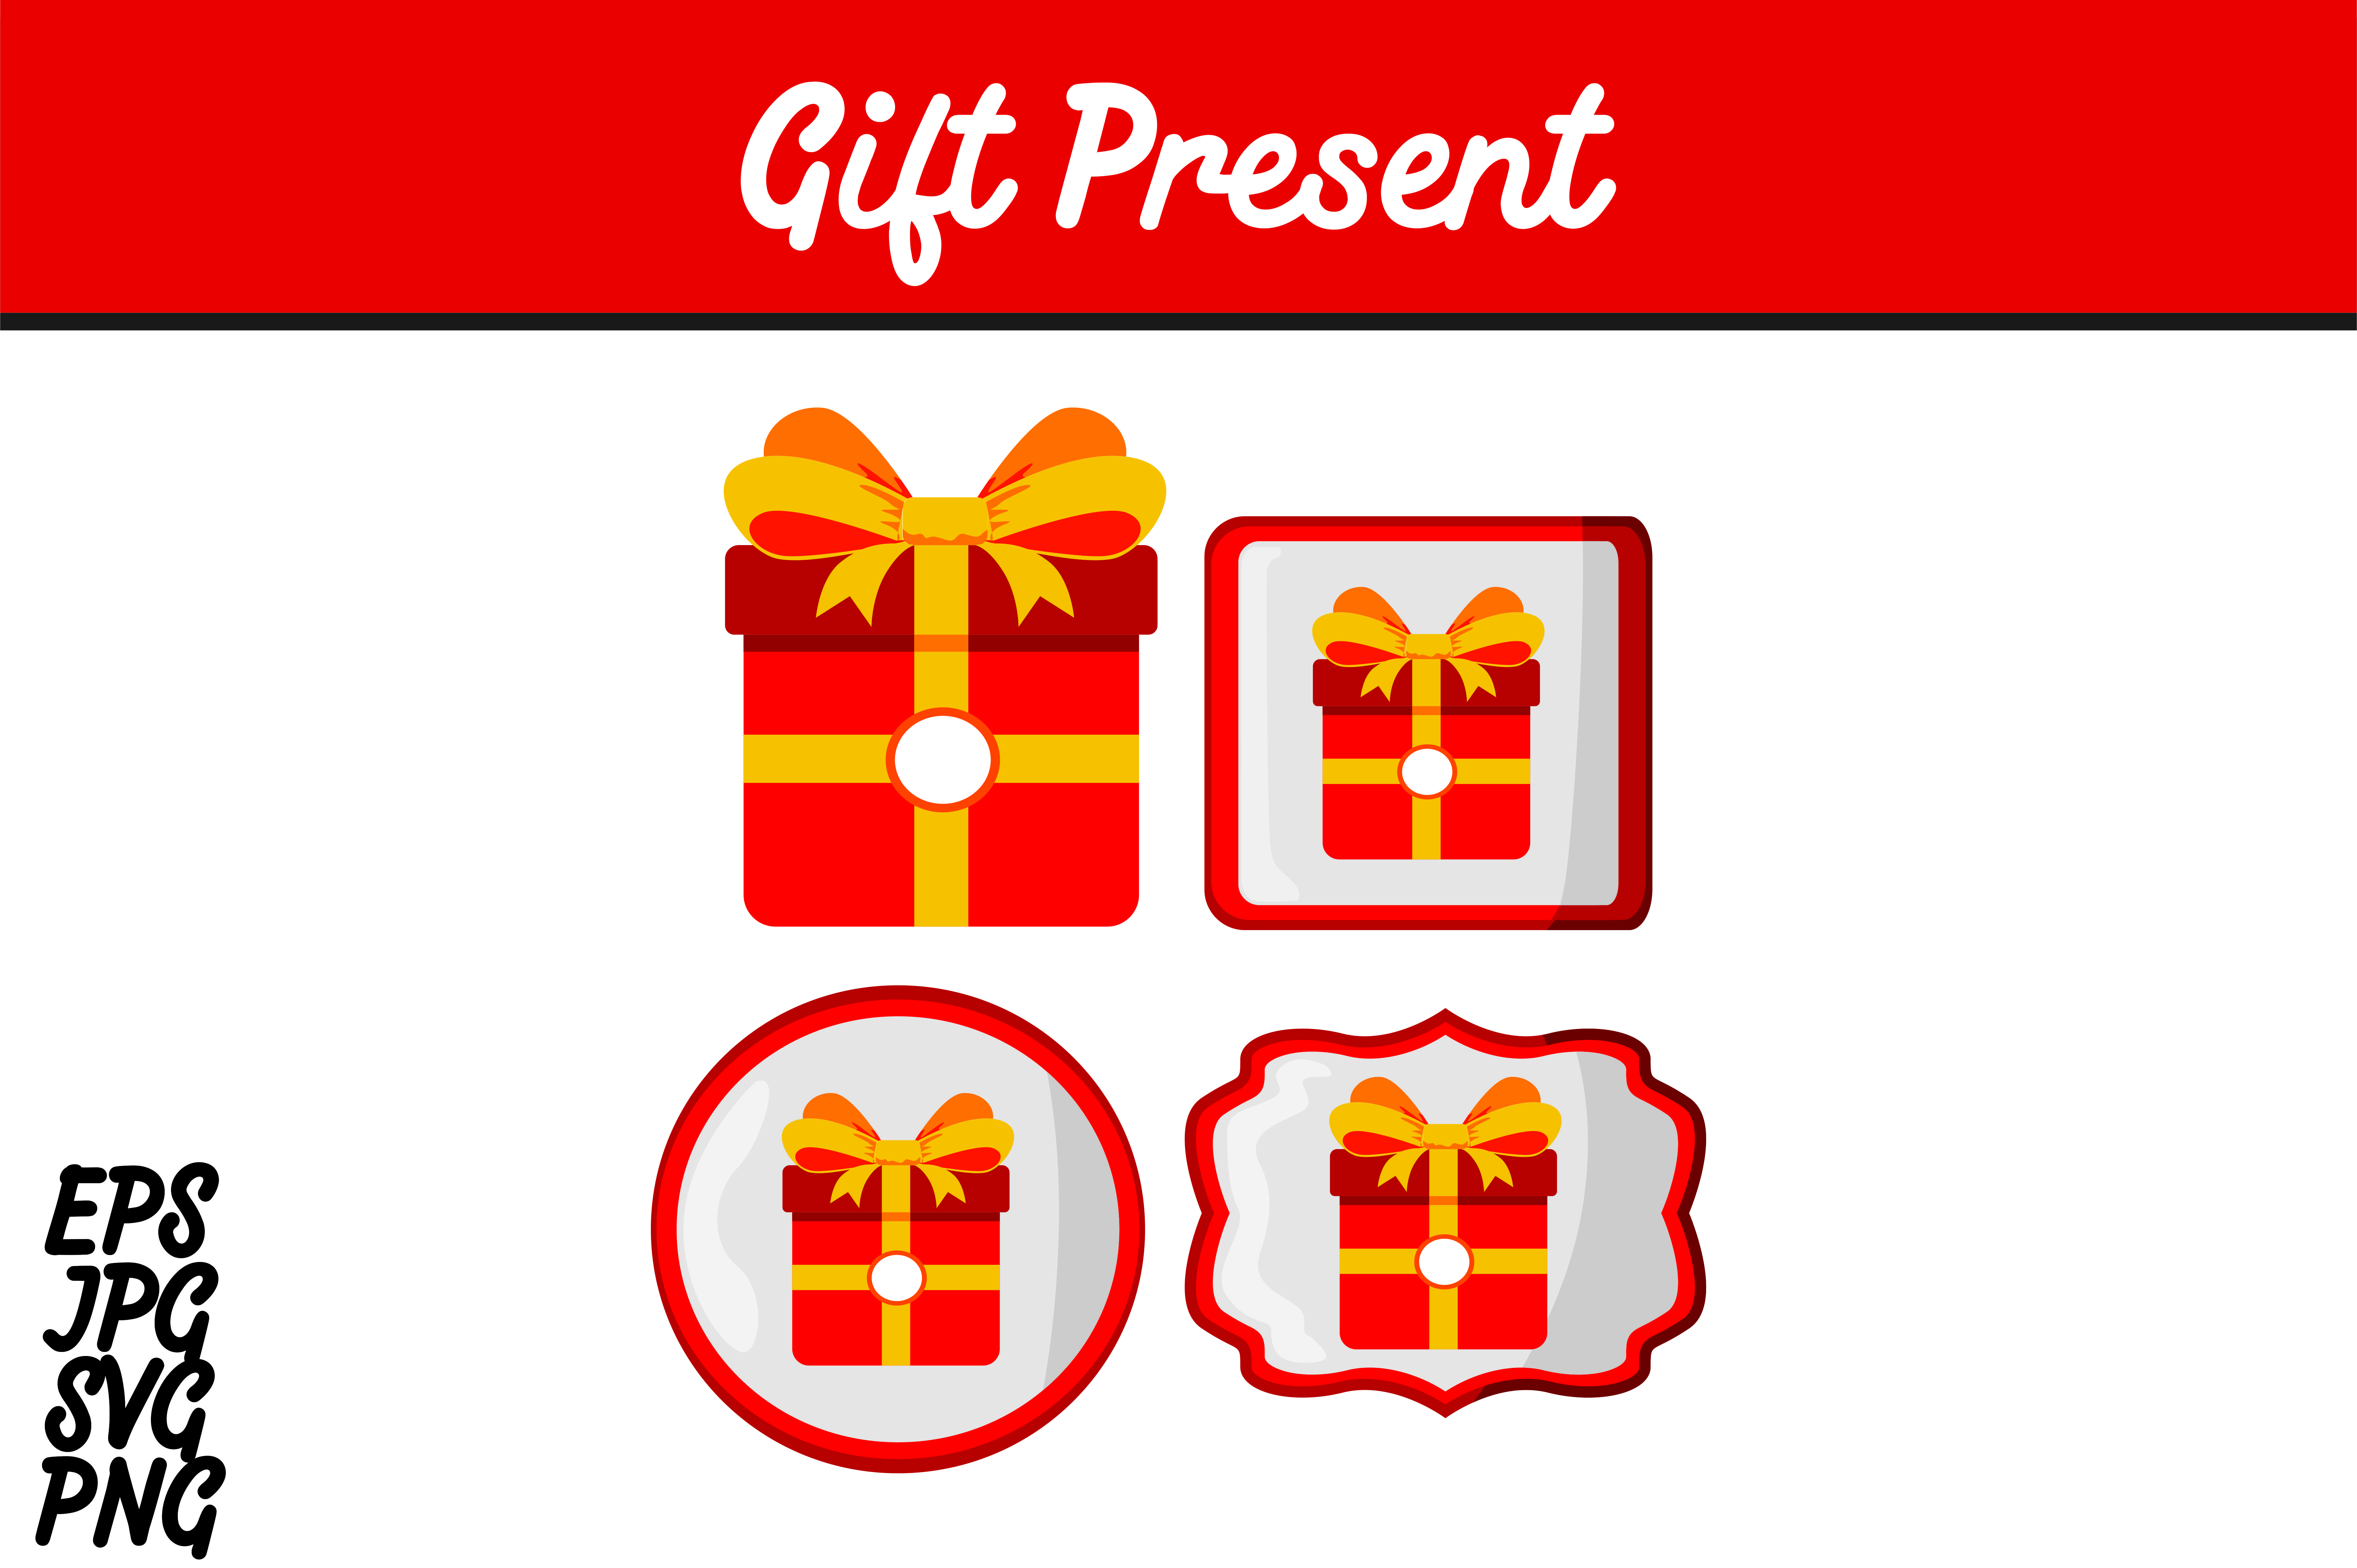 Bundle Red Gift Present Set Svg Vector Image Graphic By Arief